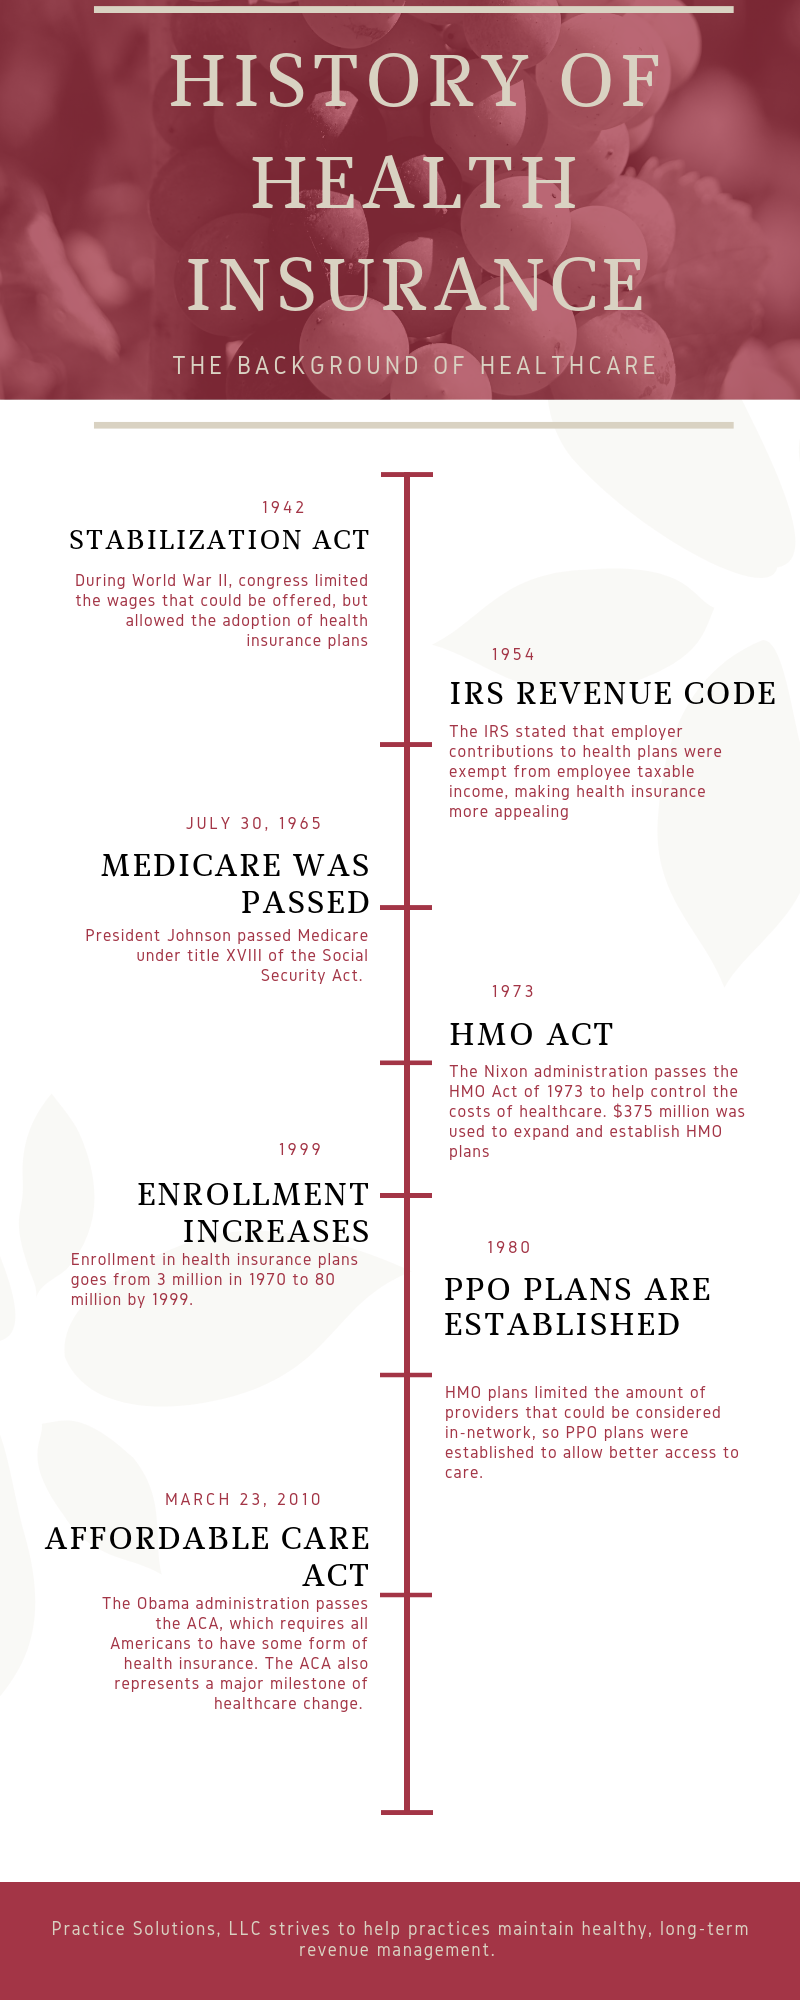 This image is to help the therapist understand the history of health insurance. Mental health billing can be complicated but understanding the ins and outs of the insurance industry help therapists get paid in private practice